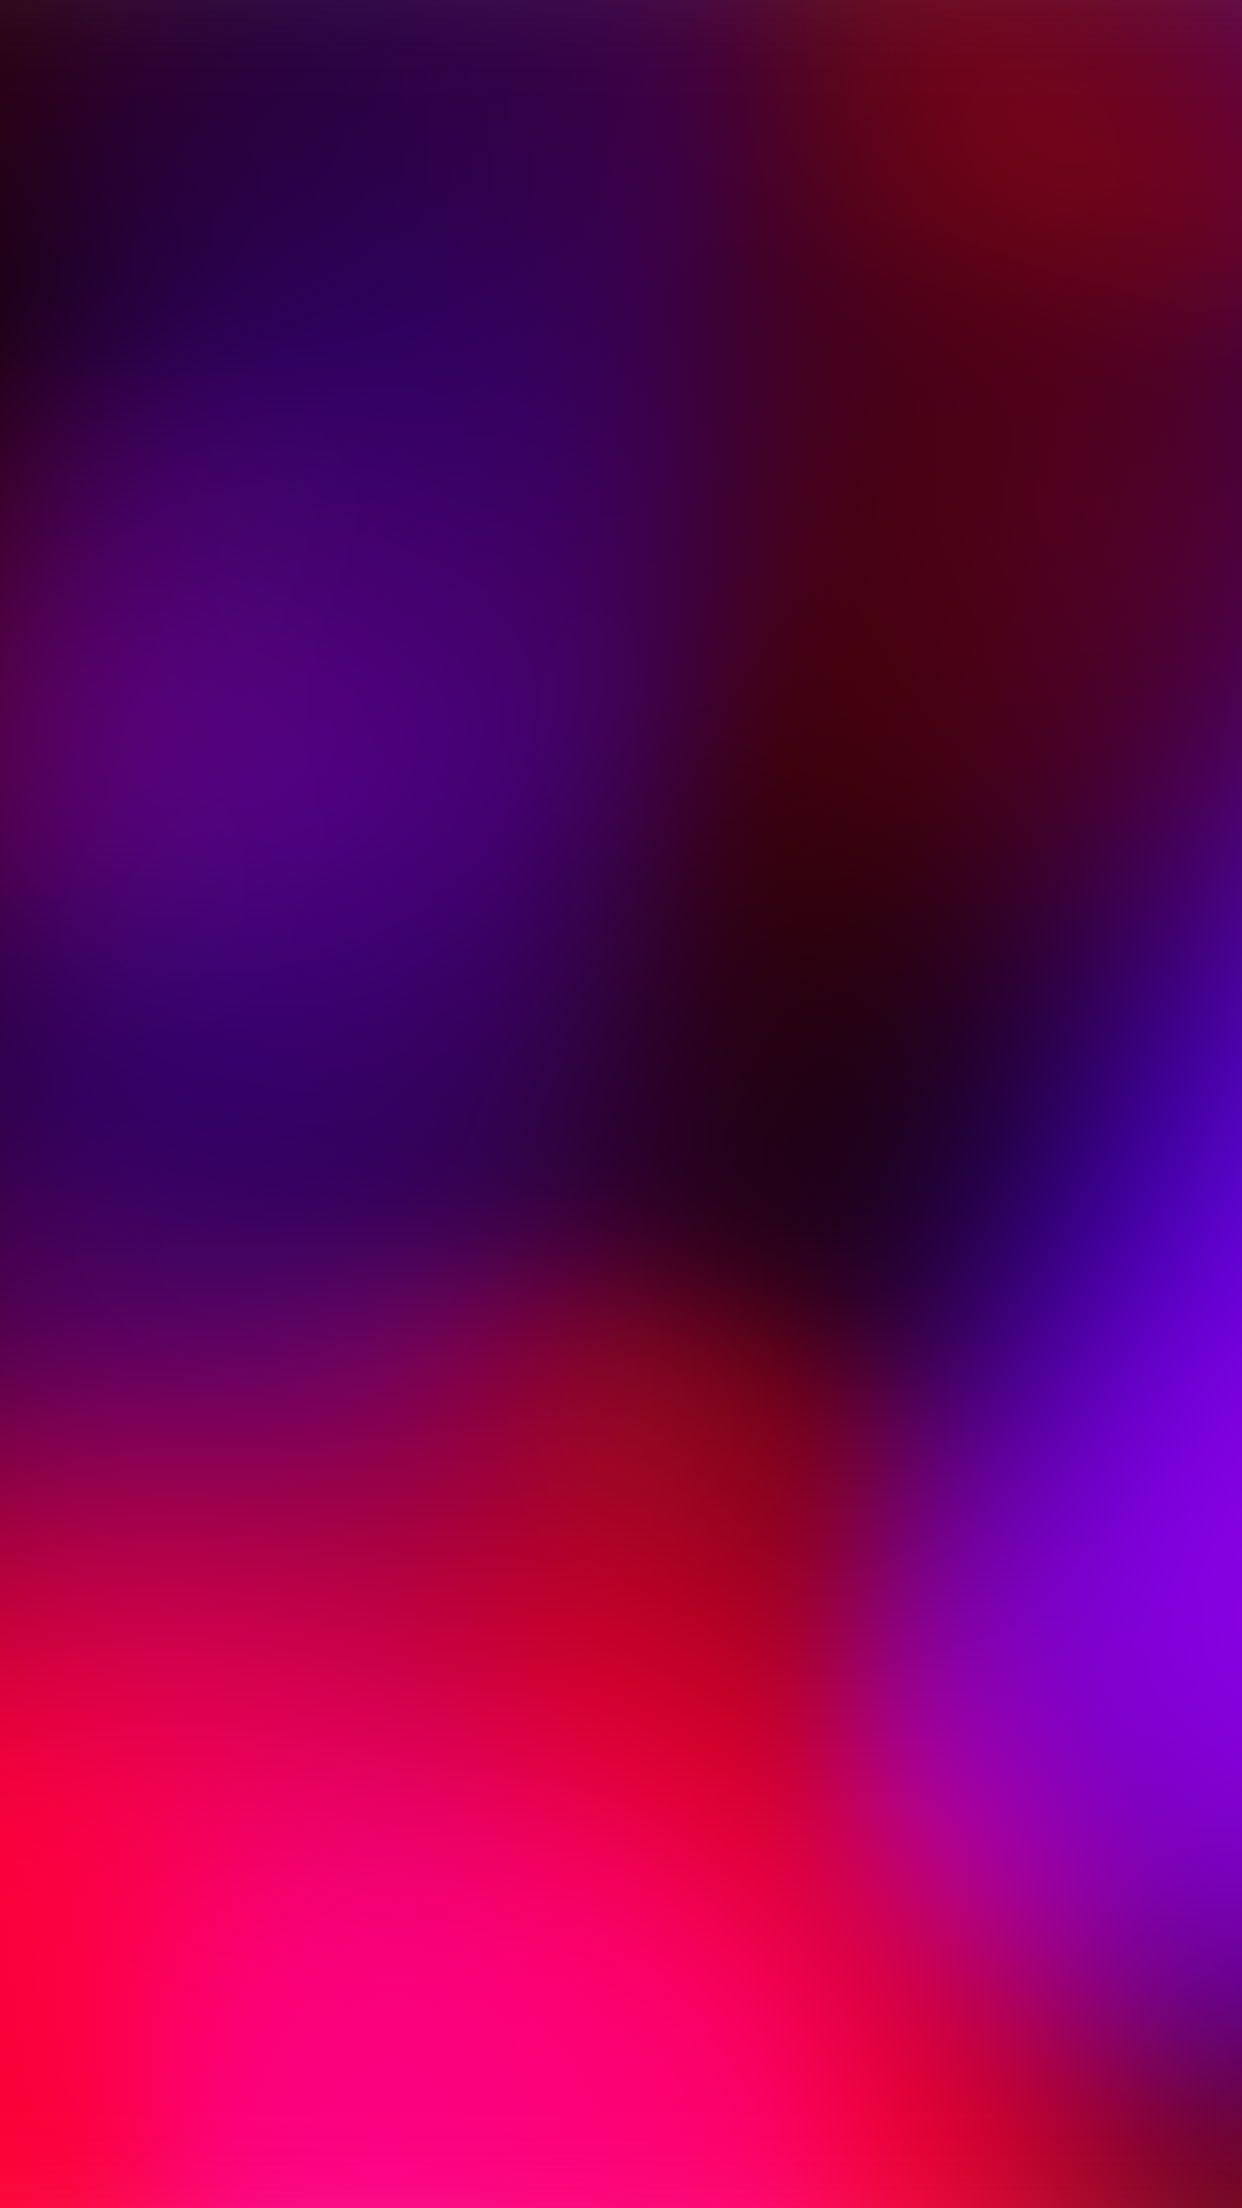 Fall Iphone 6 Plus Wallpaper Papers Co Iphone Wallpaper Sk49 Purple Red Party Blur